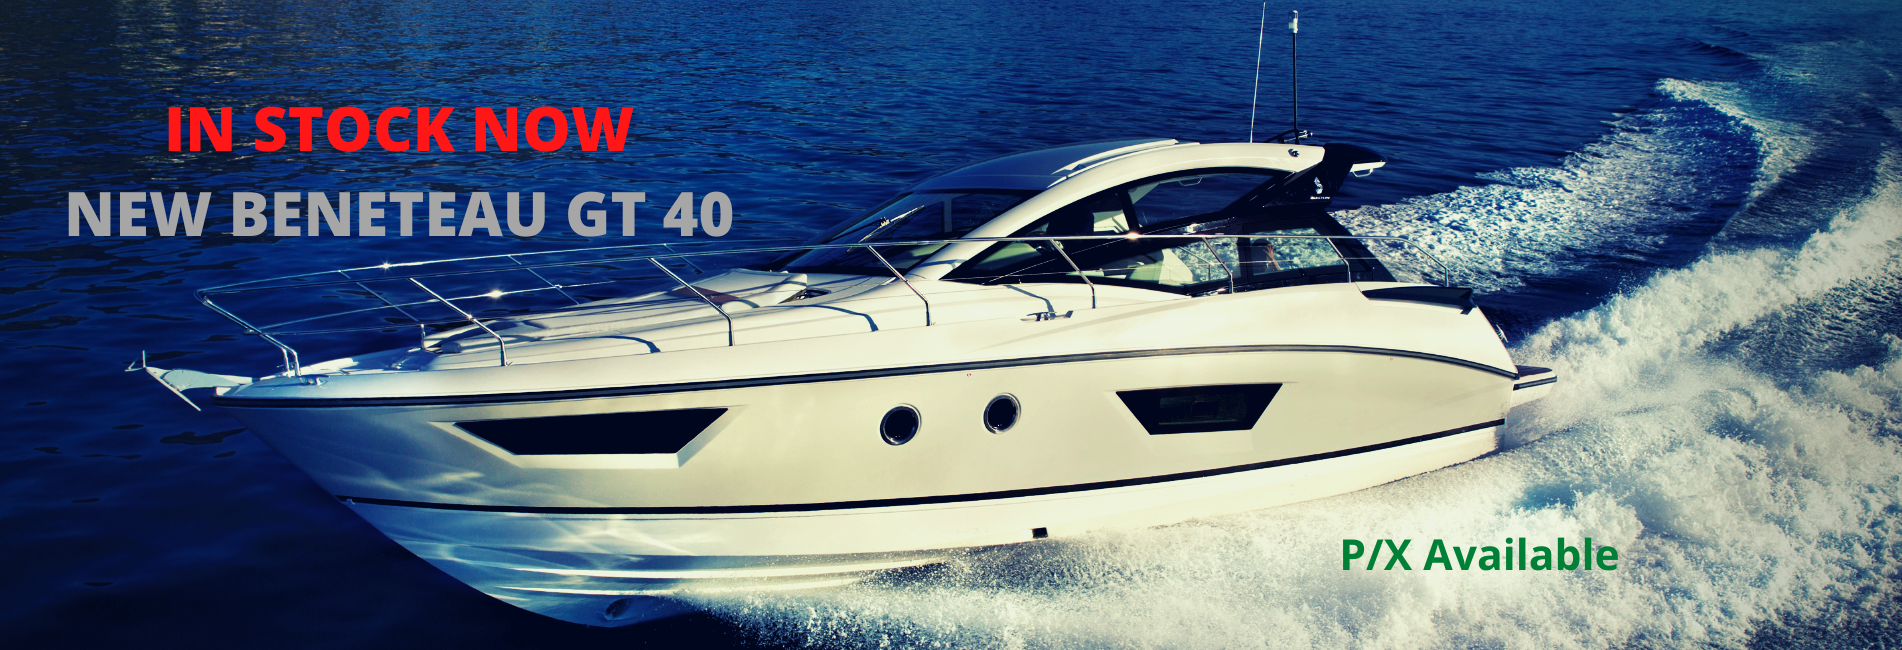 IN STOCK NOW NEW BENETEAU GT 40